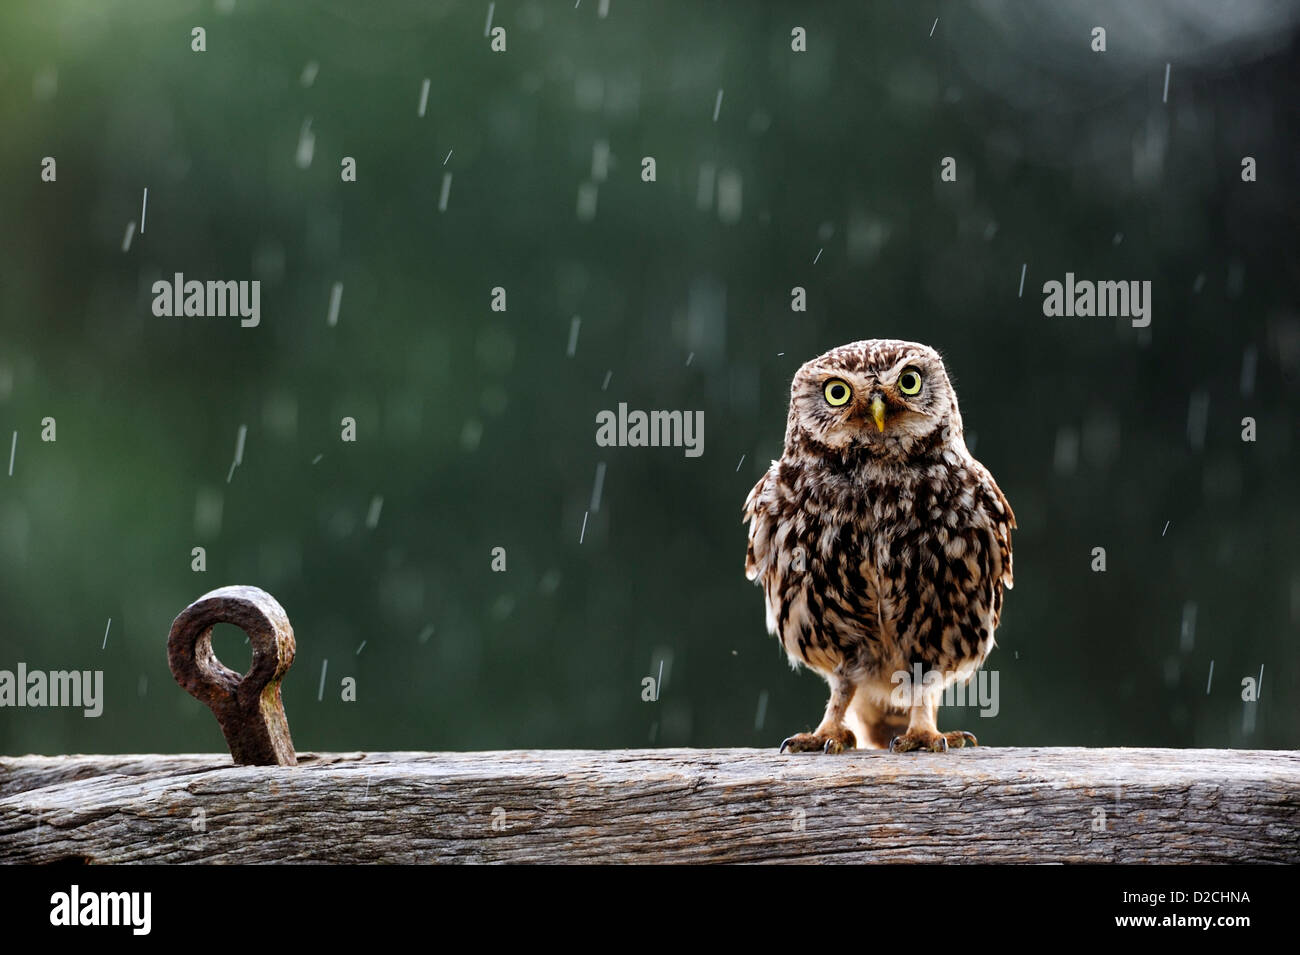 Little owl in the rain (Athene noctua) - Stock Image